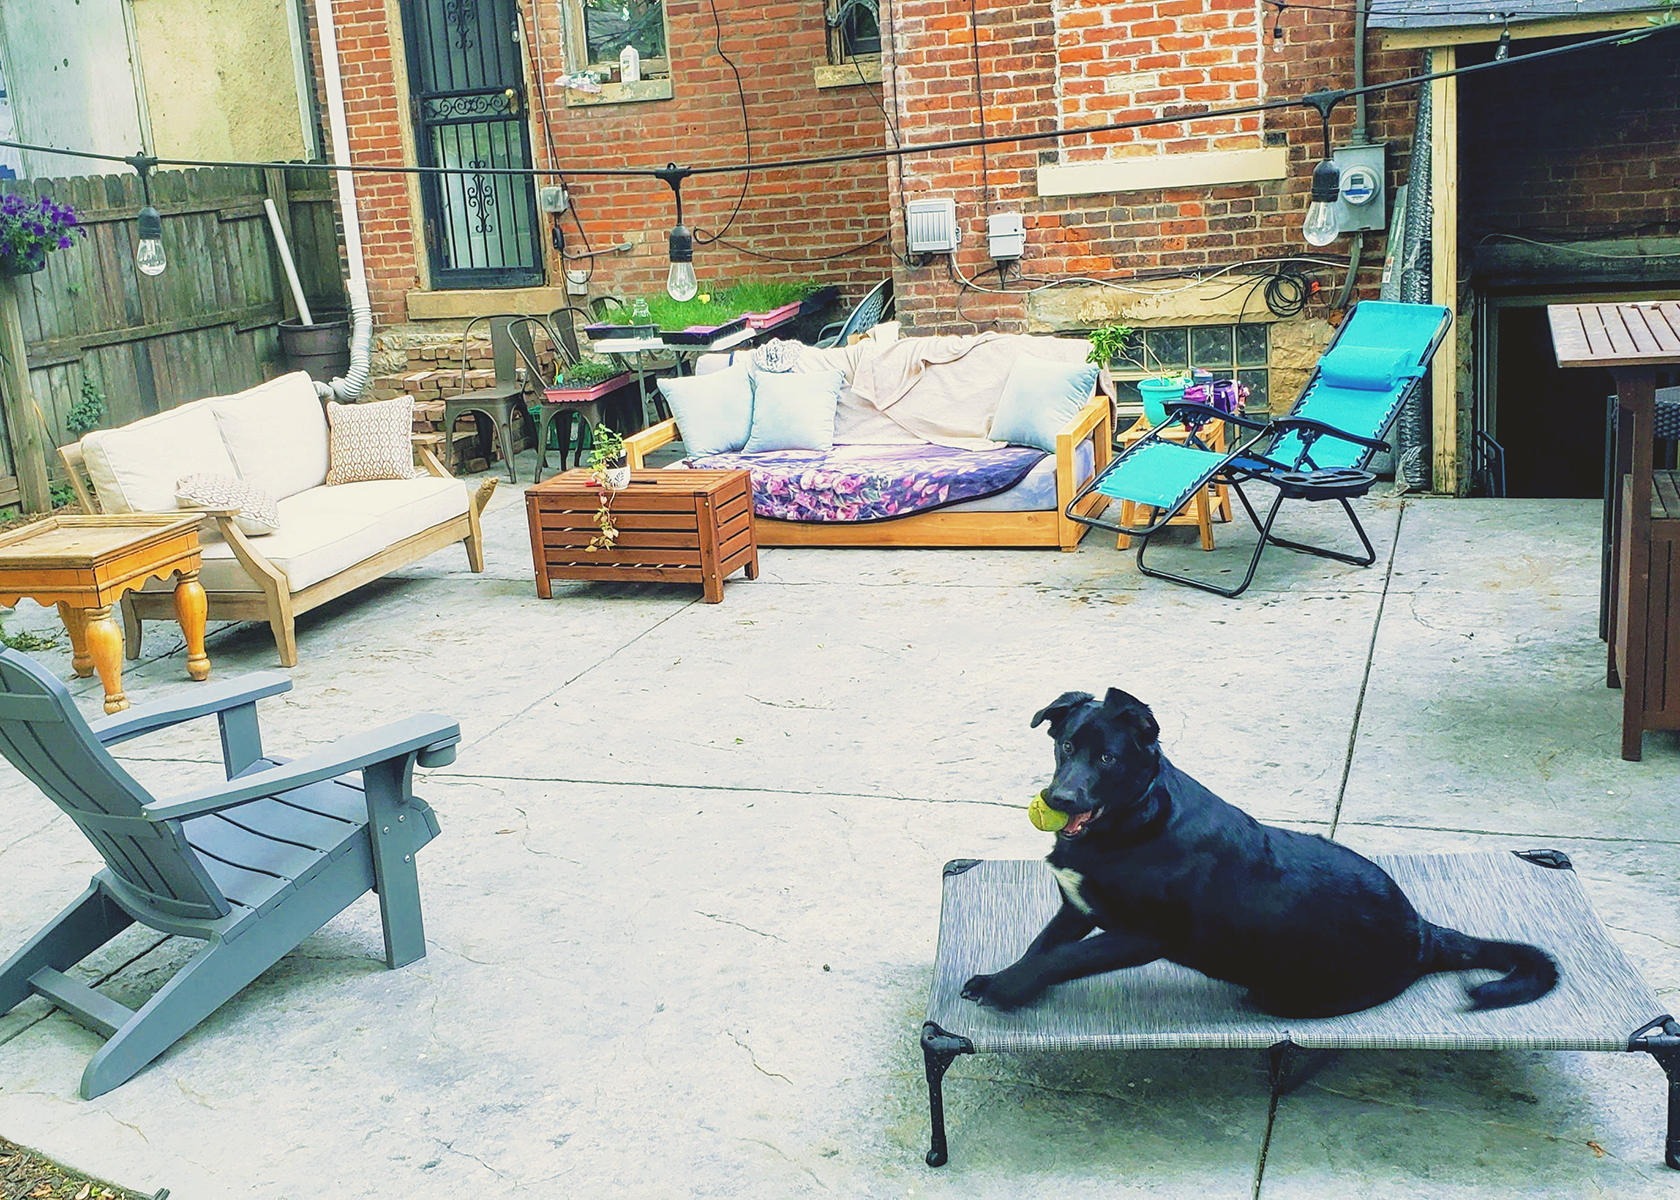 A black puppy sits on a dog bed holding a tennis ball in his mouth, the dog bed is on a large cement patio with couches and tables.